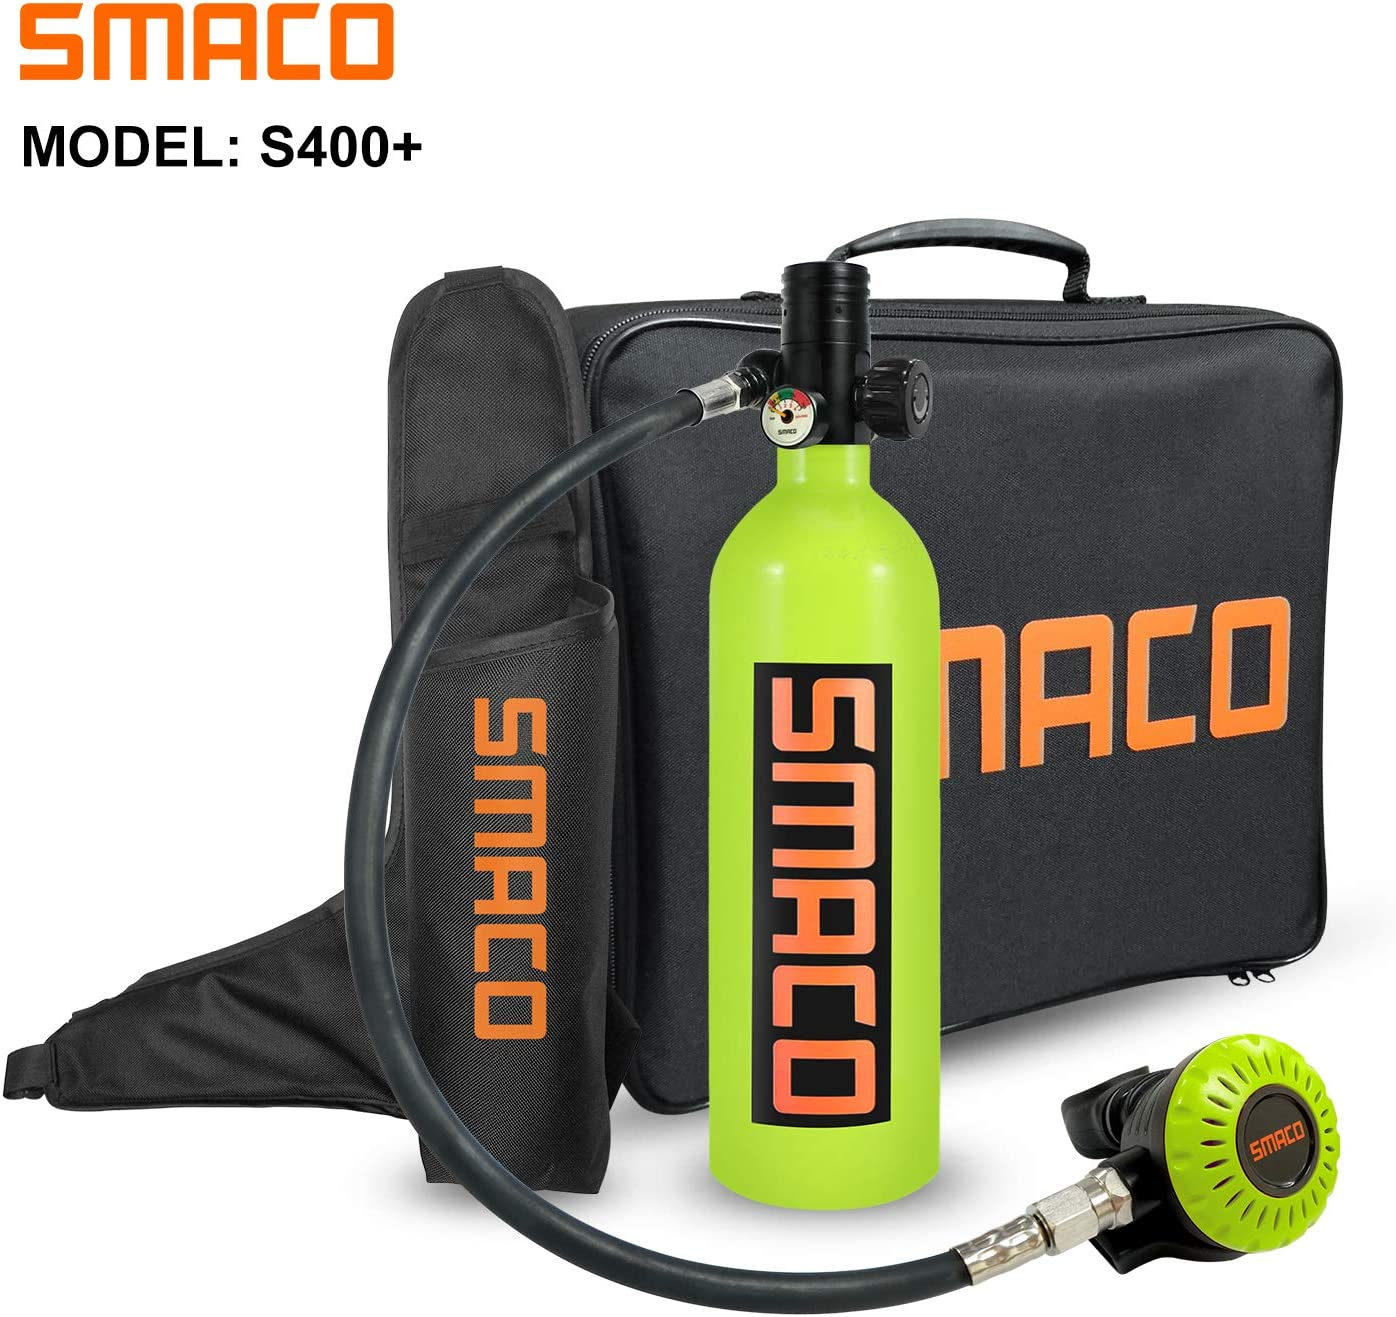 Packages Scuba Tank for Diving Oxygen Tank for Breathing Spare Air Diving Tank Dive Equipment Support 15-20 Minutes(340 Breathe Times) Mini Scuba Tank with Pump Scuba Diving Accessories S400